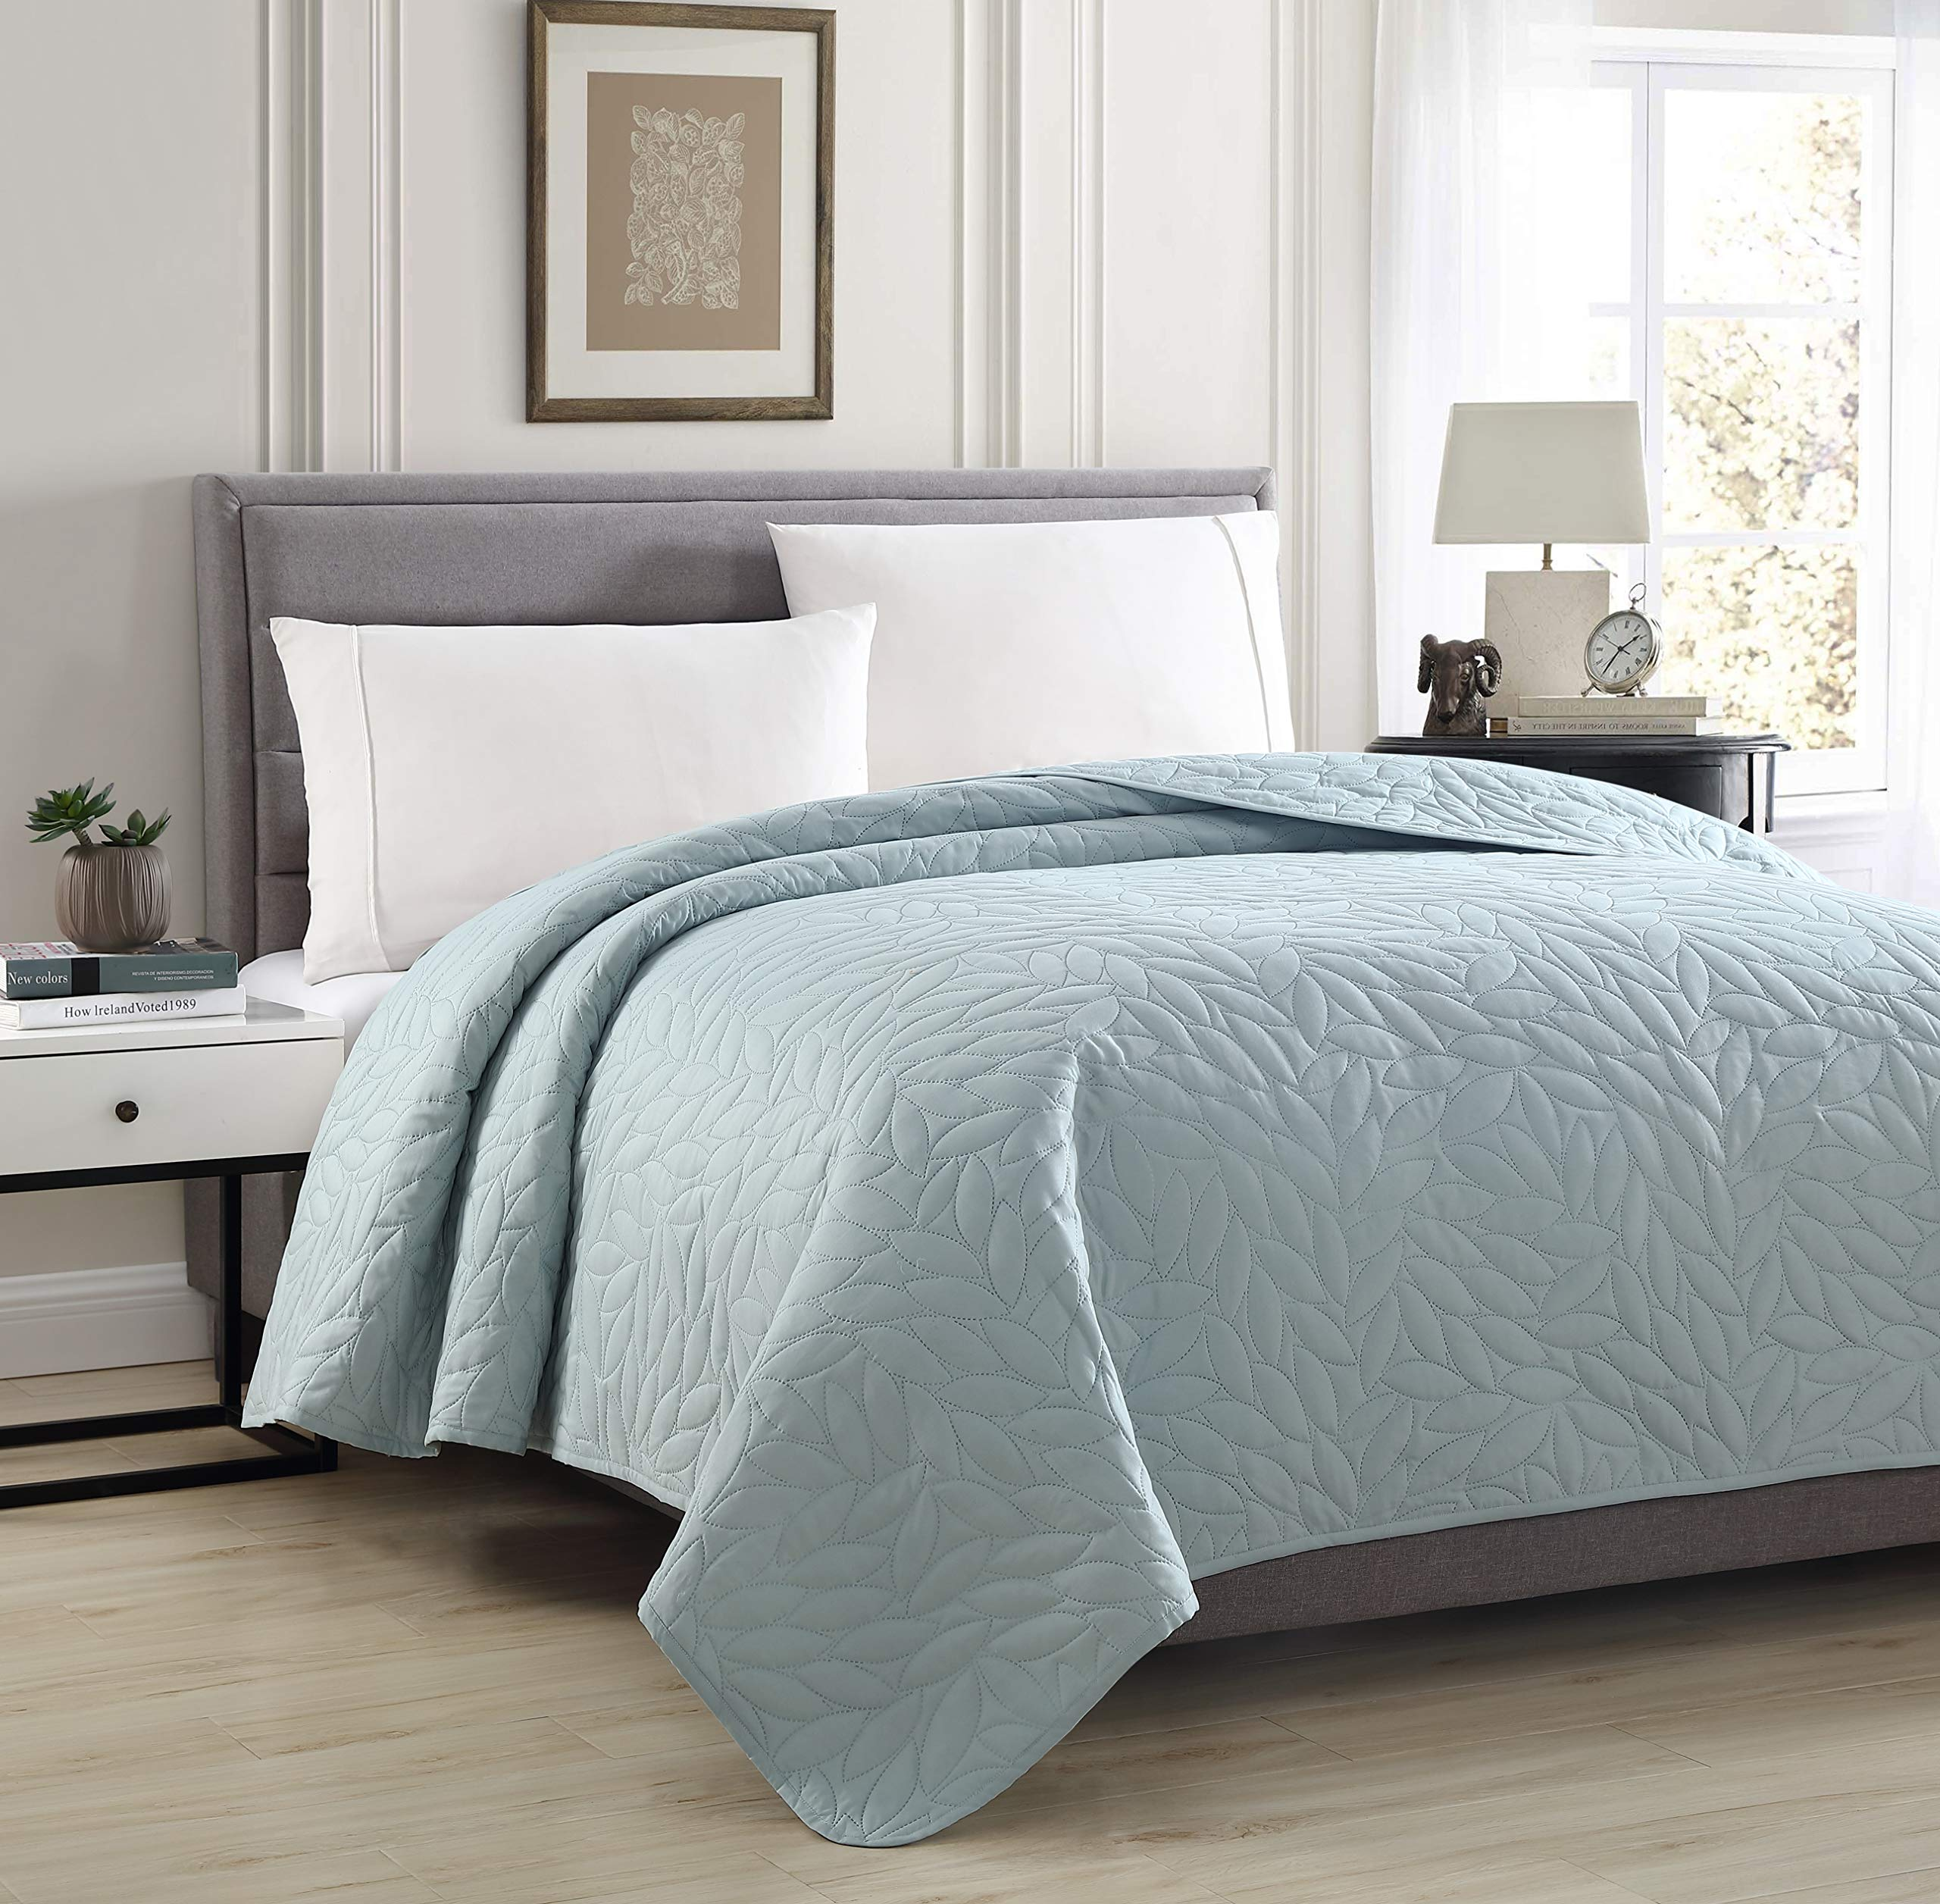 Bourina Reversible Bed Quilt Bedspread and Coverlet 90'' x 90'' Microfiber Thin Comforter-Full/Queen, Blue